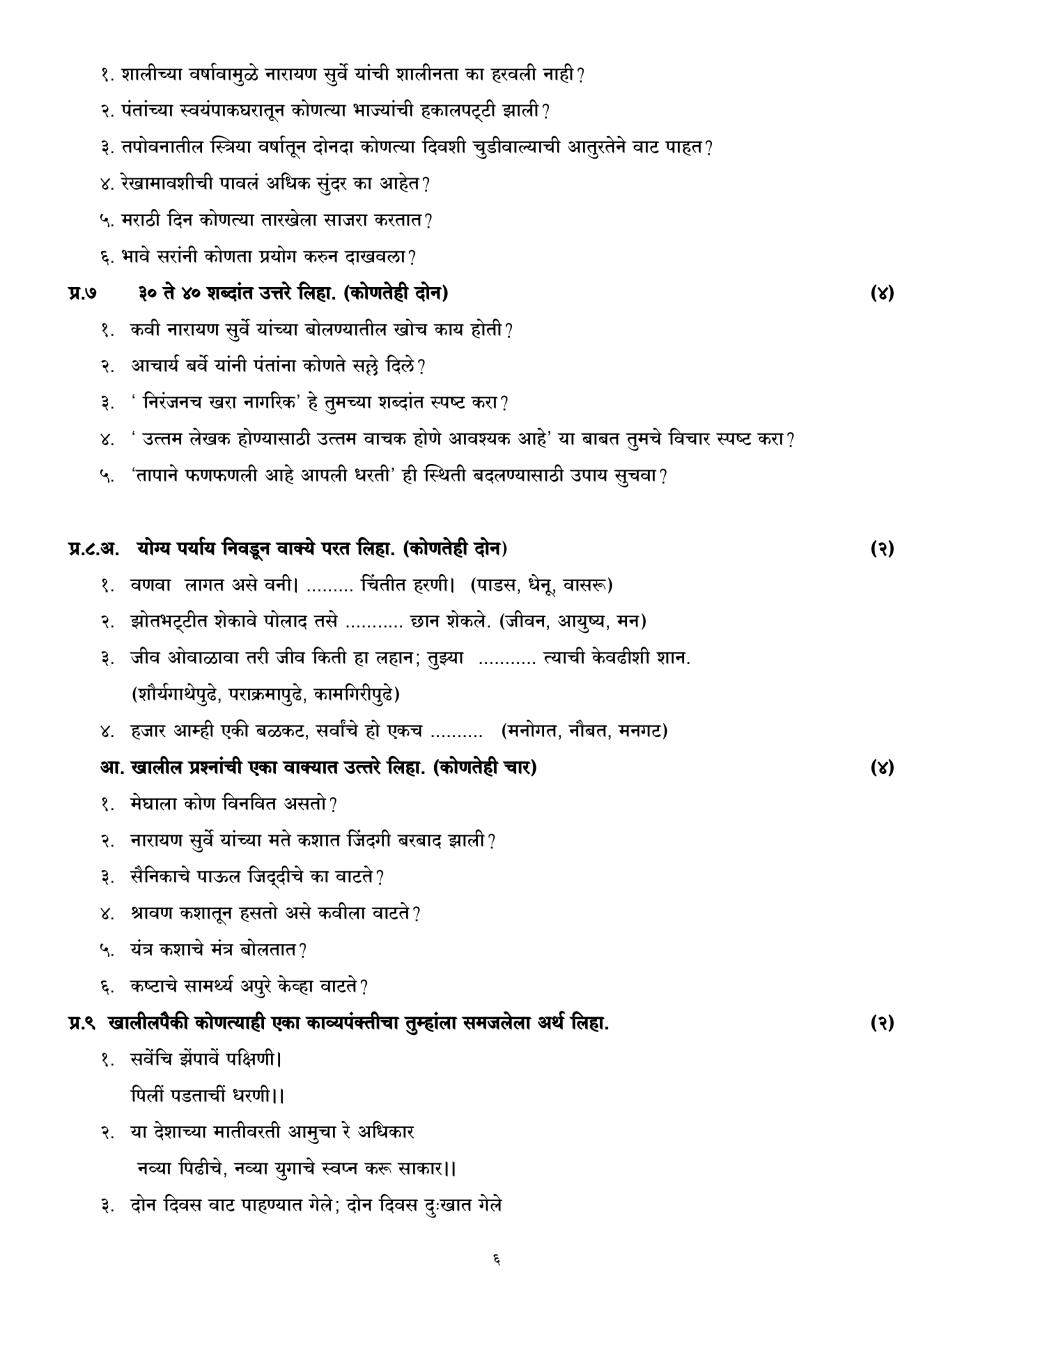 CBSE Sample Papers 2020 for Class 10 – Marathi